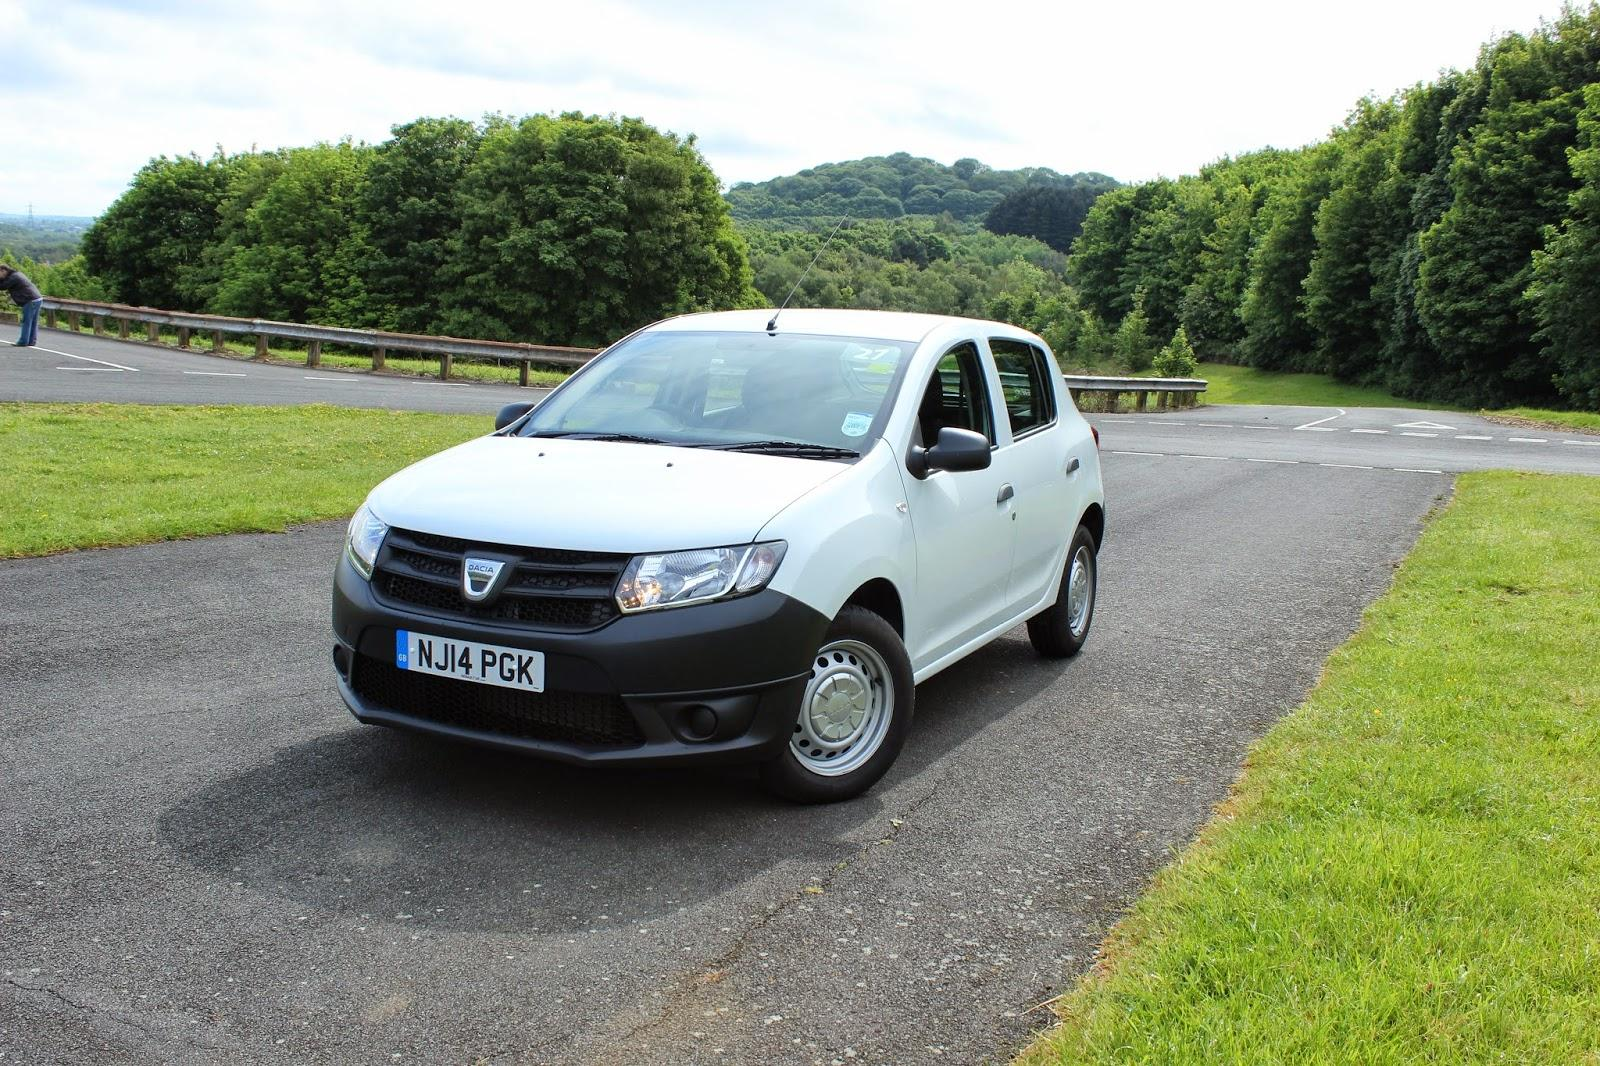 dacia sandero access 1 0 73 ps abs esp isofix. Black Bedroom Furniture Sets. Home Design Ideas